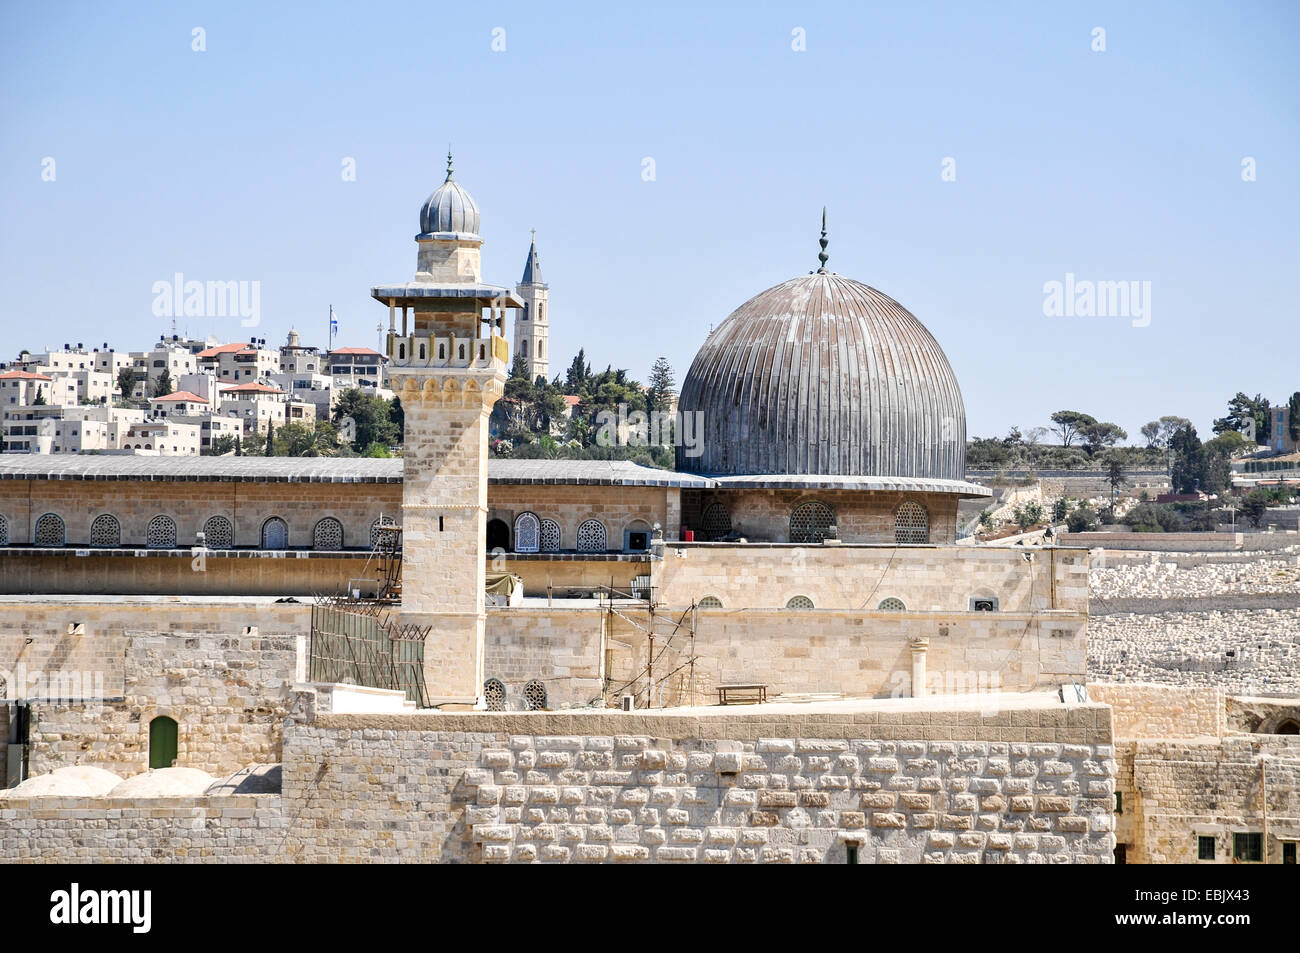 Haram al-Sharif (Temple Mount), Jerusalem, Israel - Stock Image